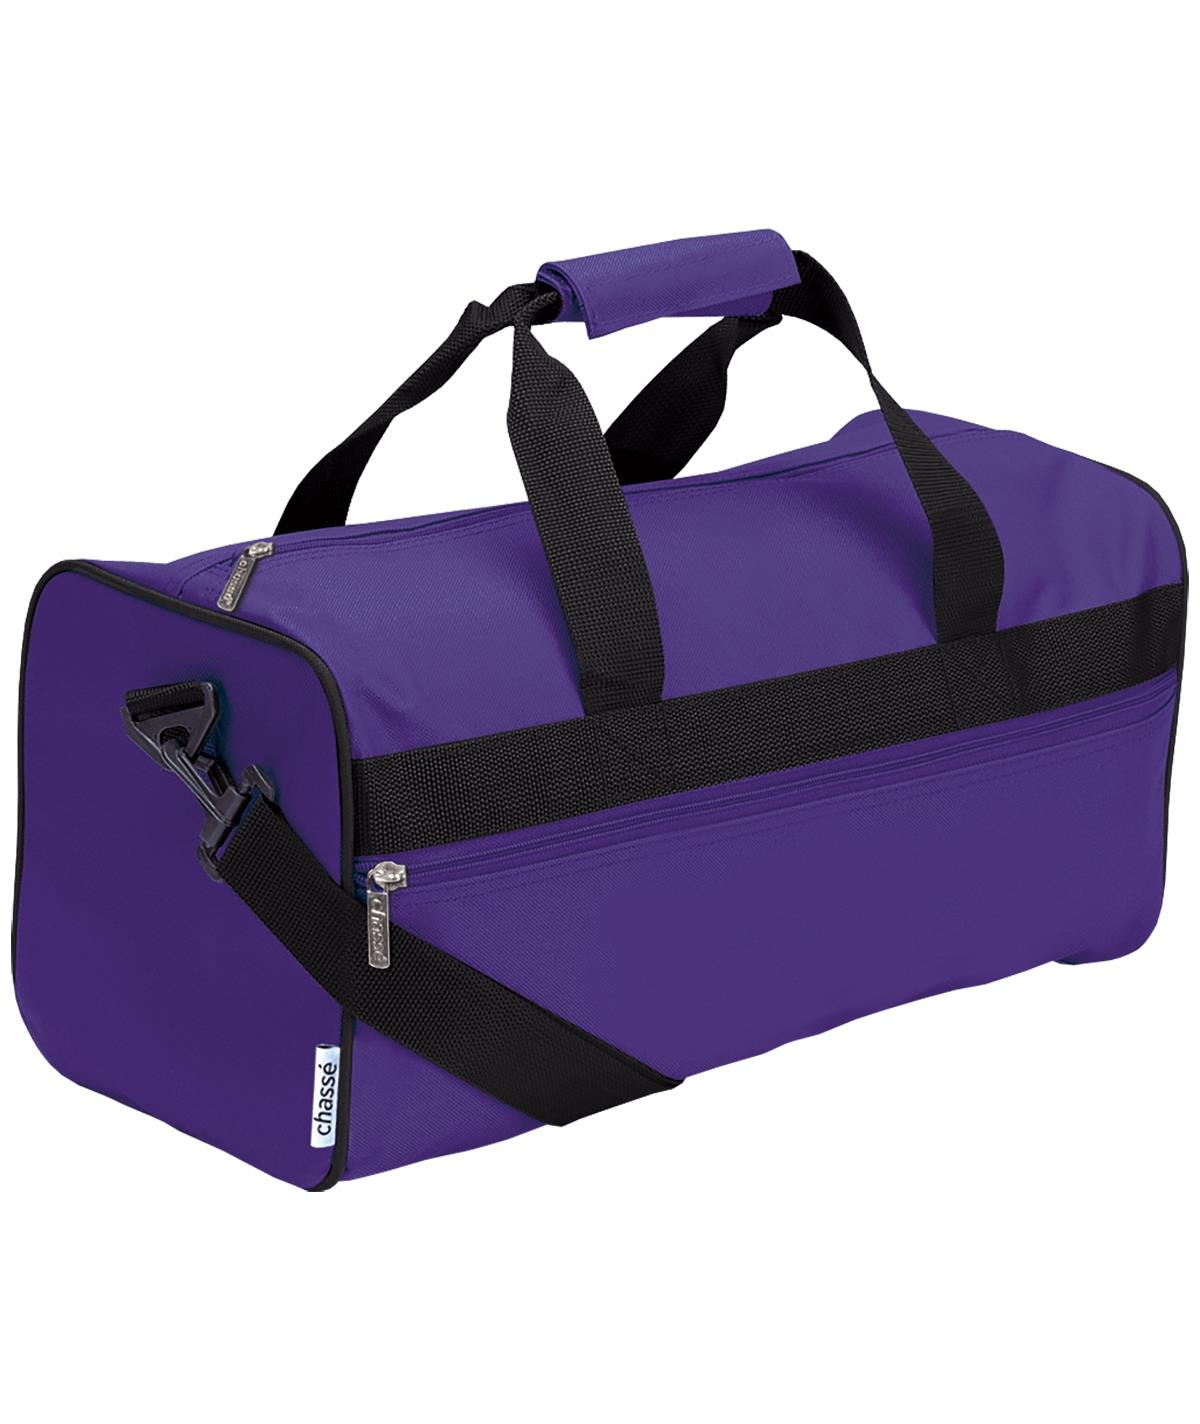 Chassé Basic Duffle Bag